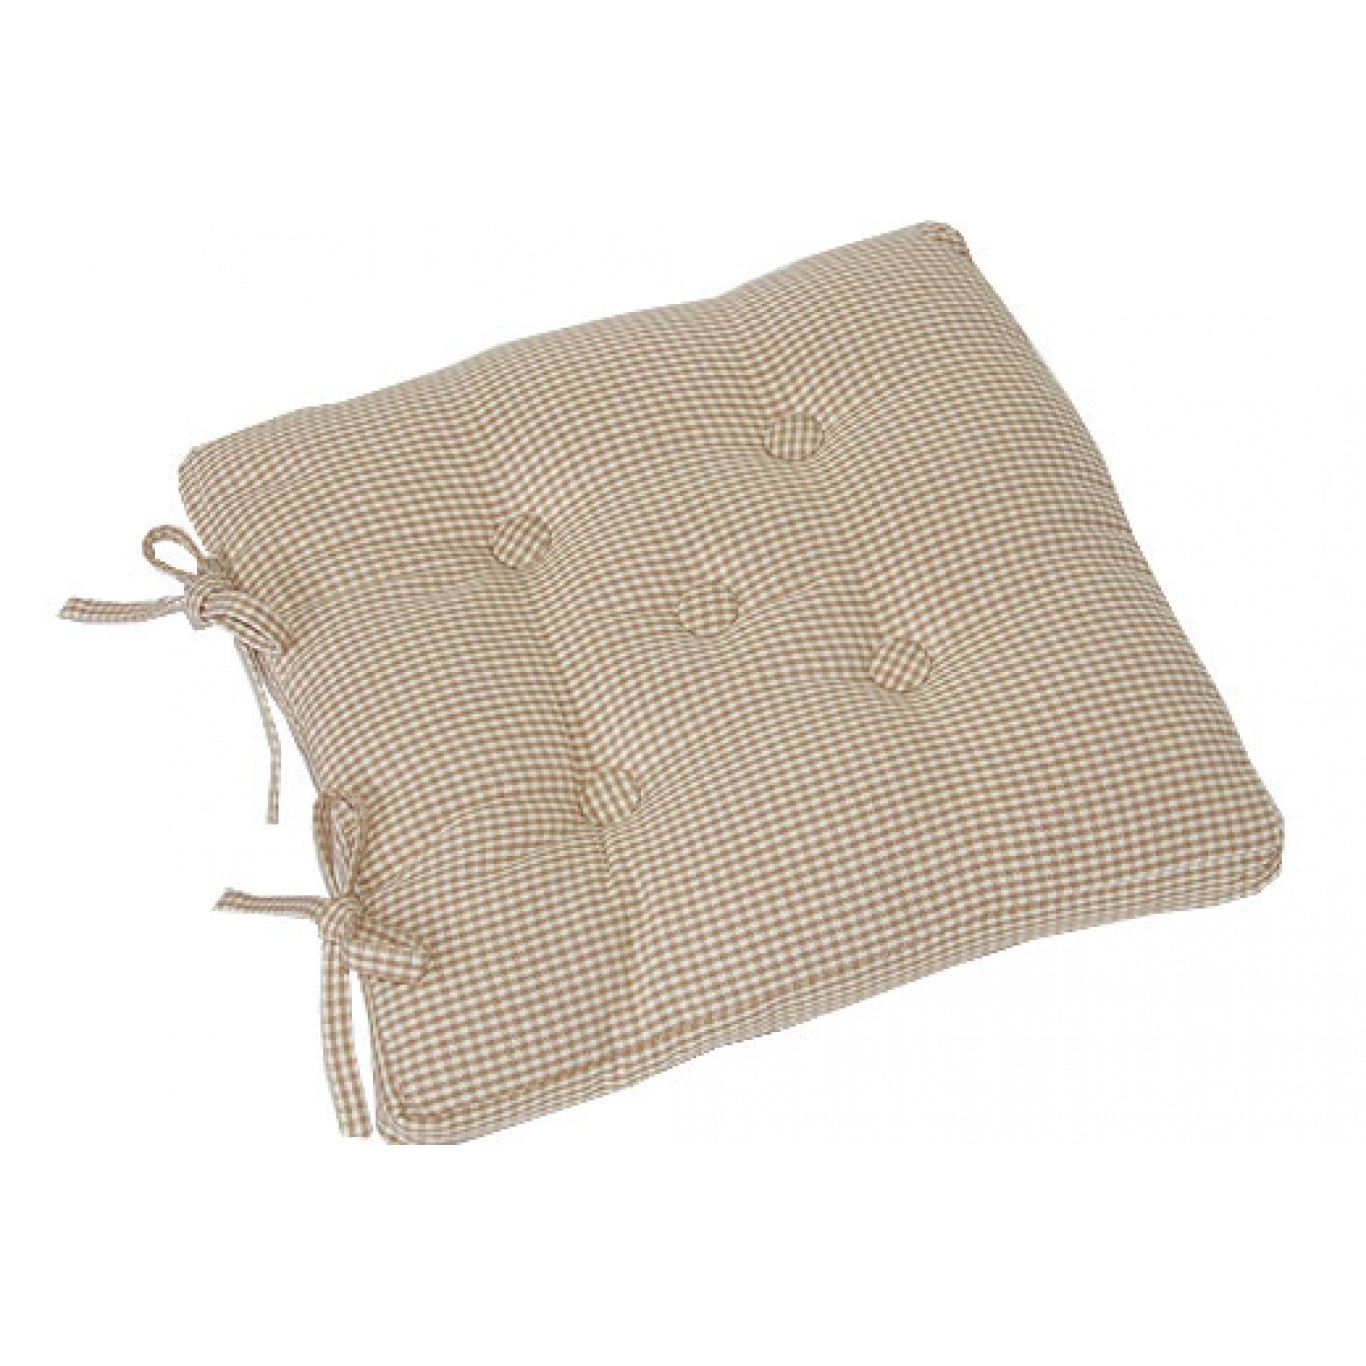 Image of Auberge Biscuit Seat Pad